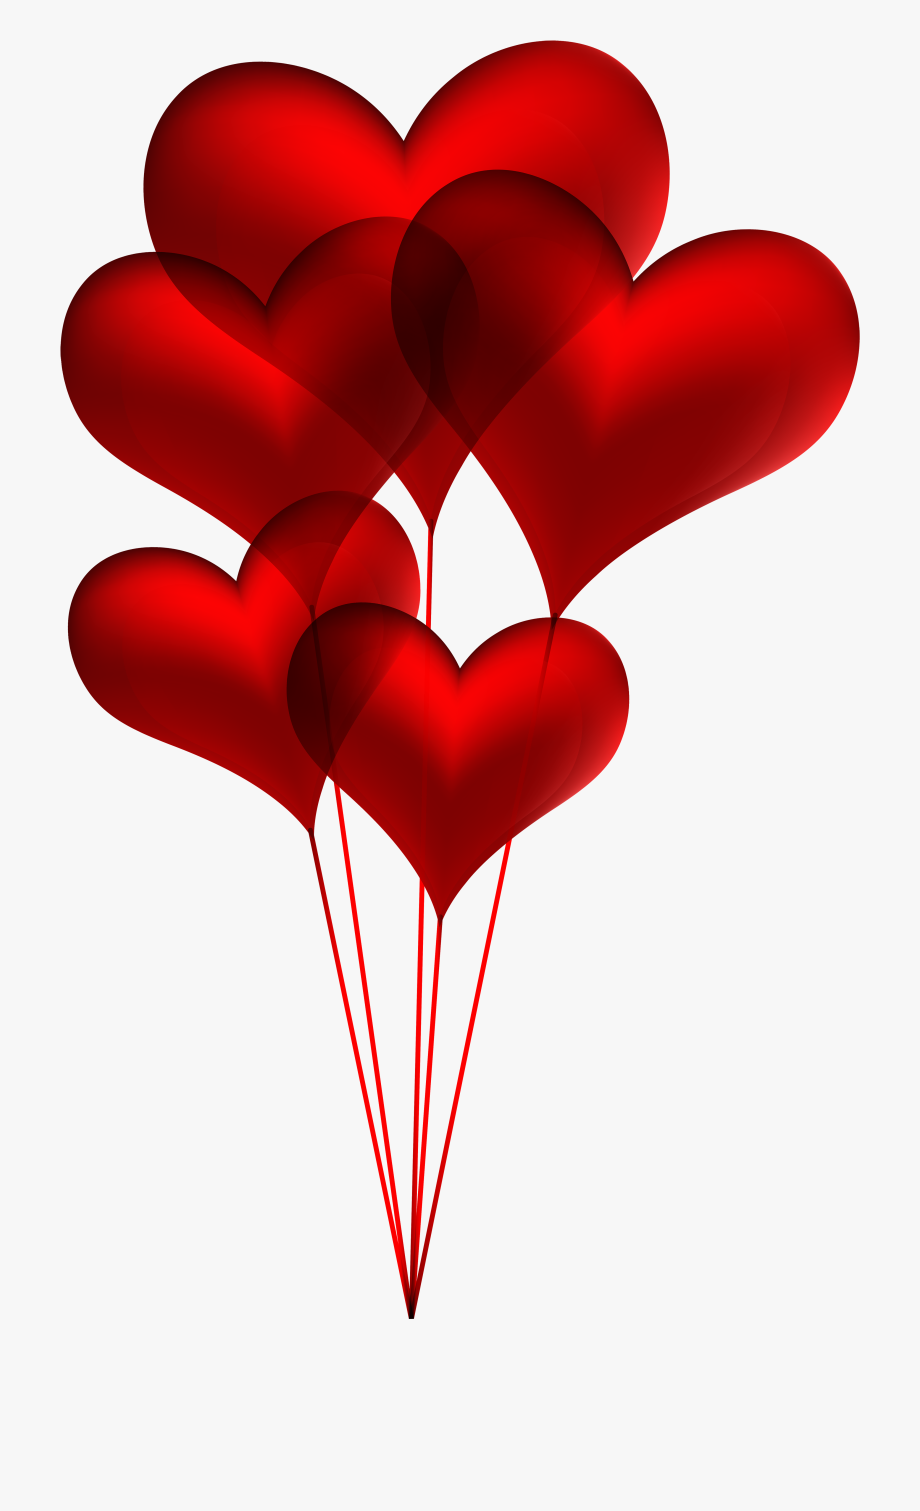 Red Heart Balloons Transparent Png Clip Art Image.